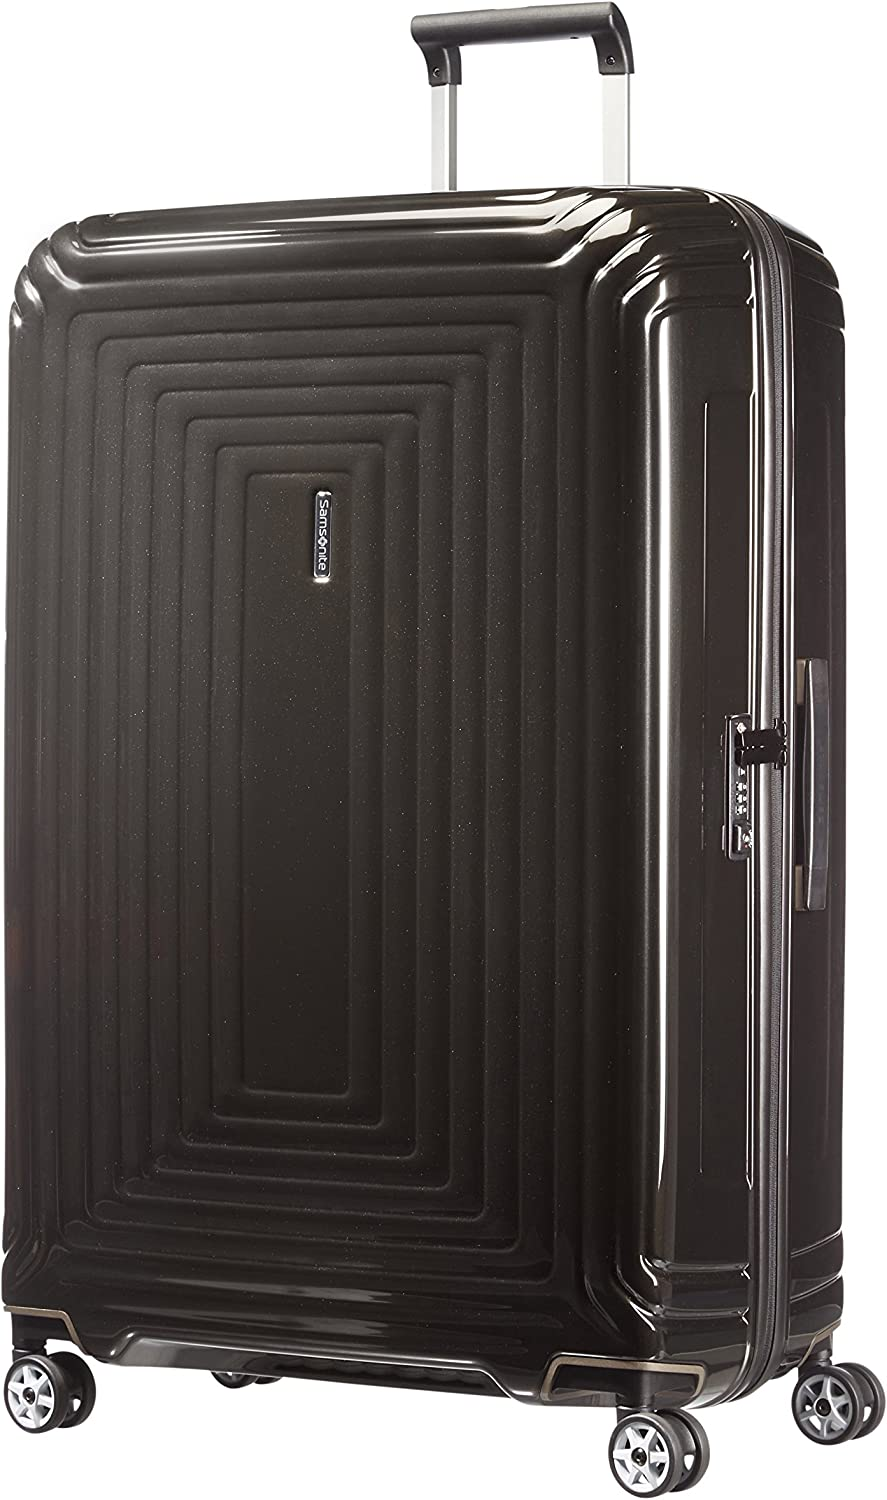 Samsonite Neopulse - Spinner XL Maleta, 81 cm, 124 L, Negro (Metallic Black)